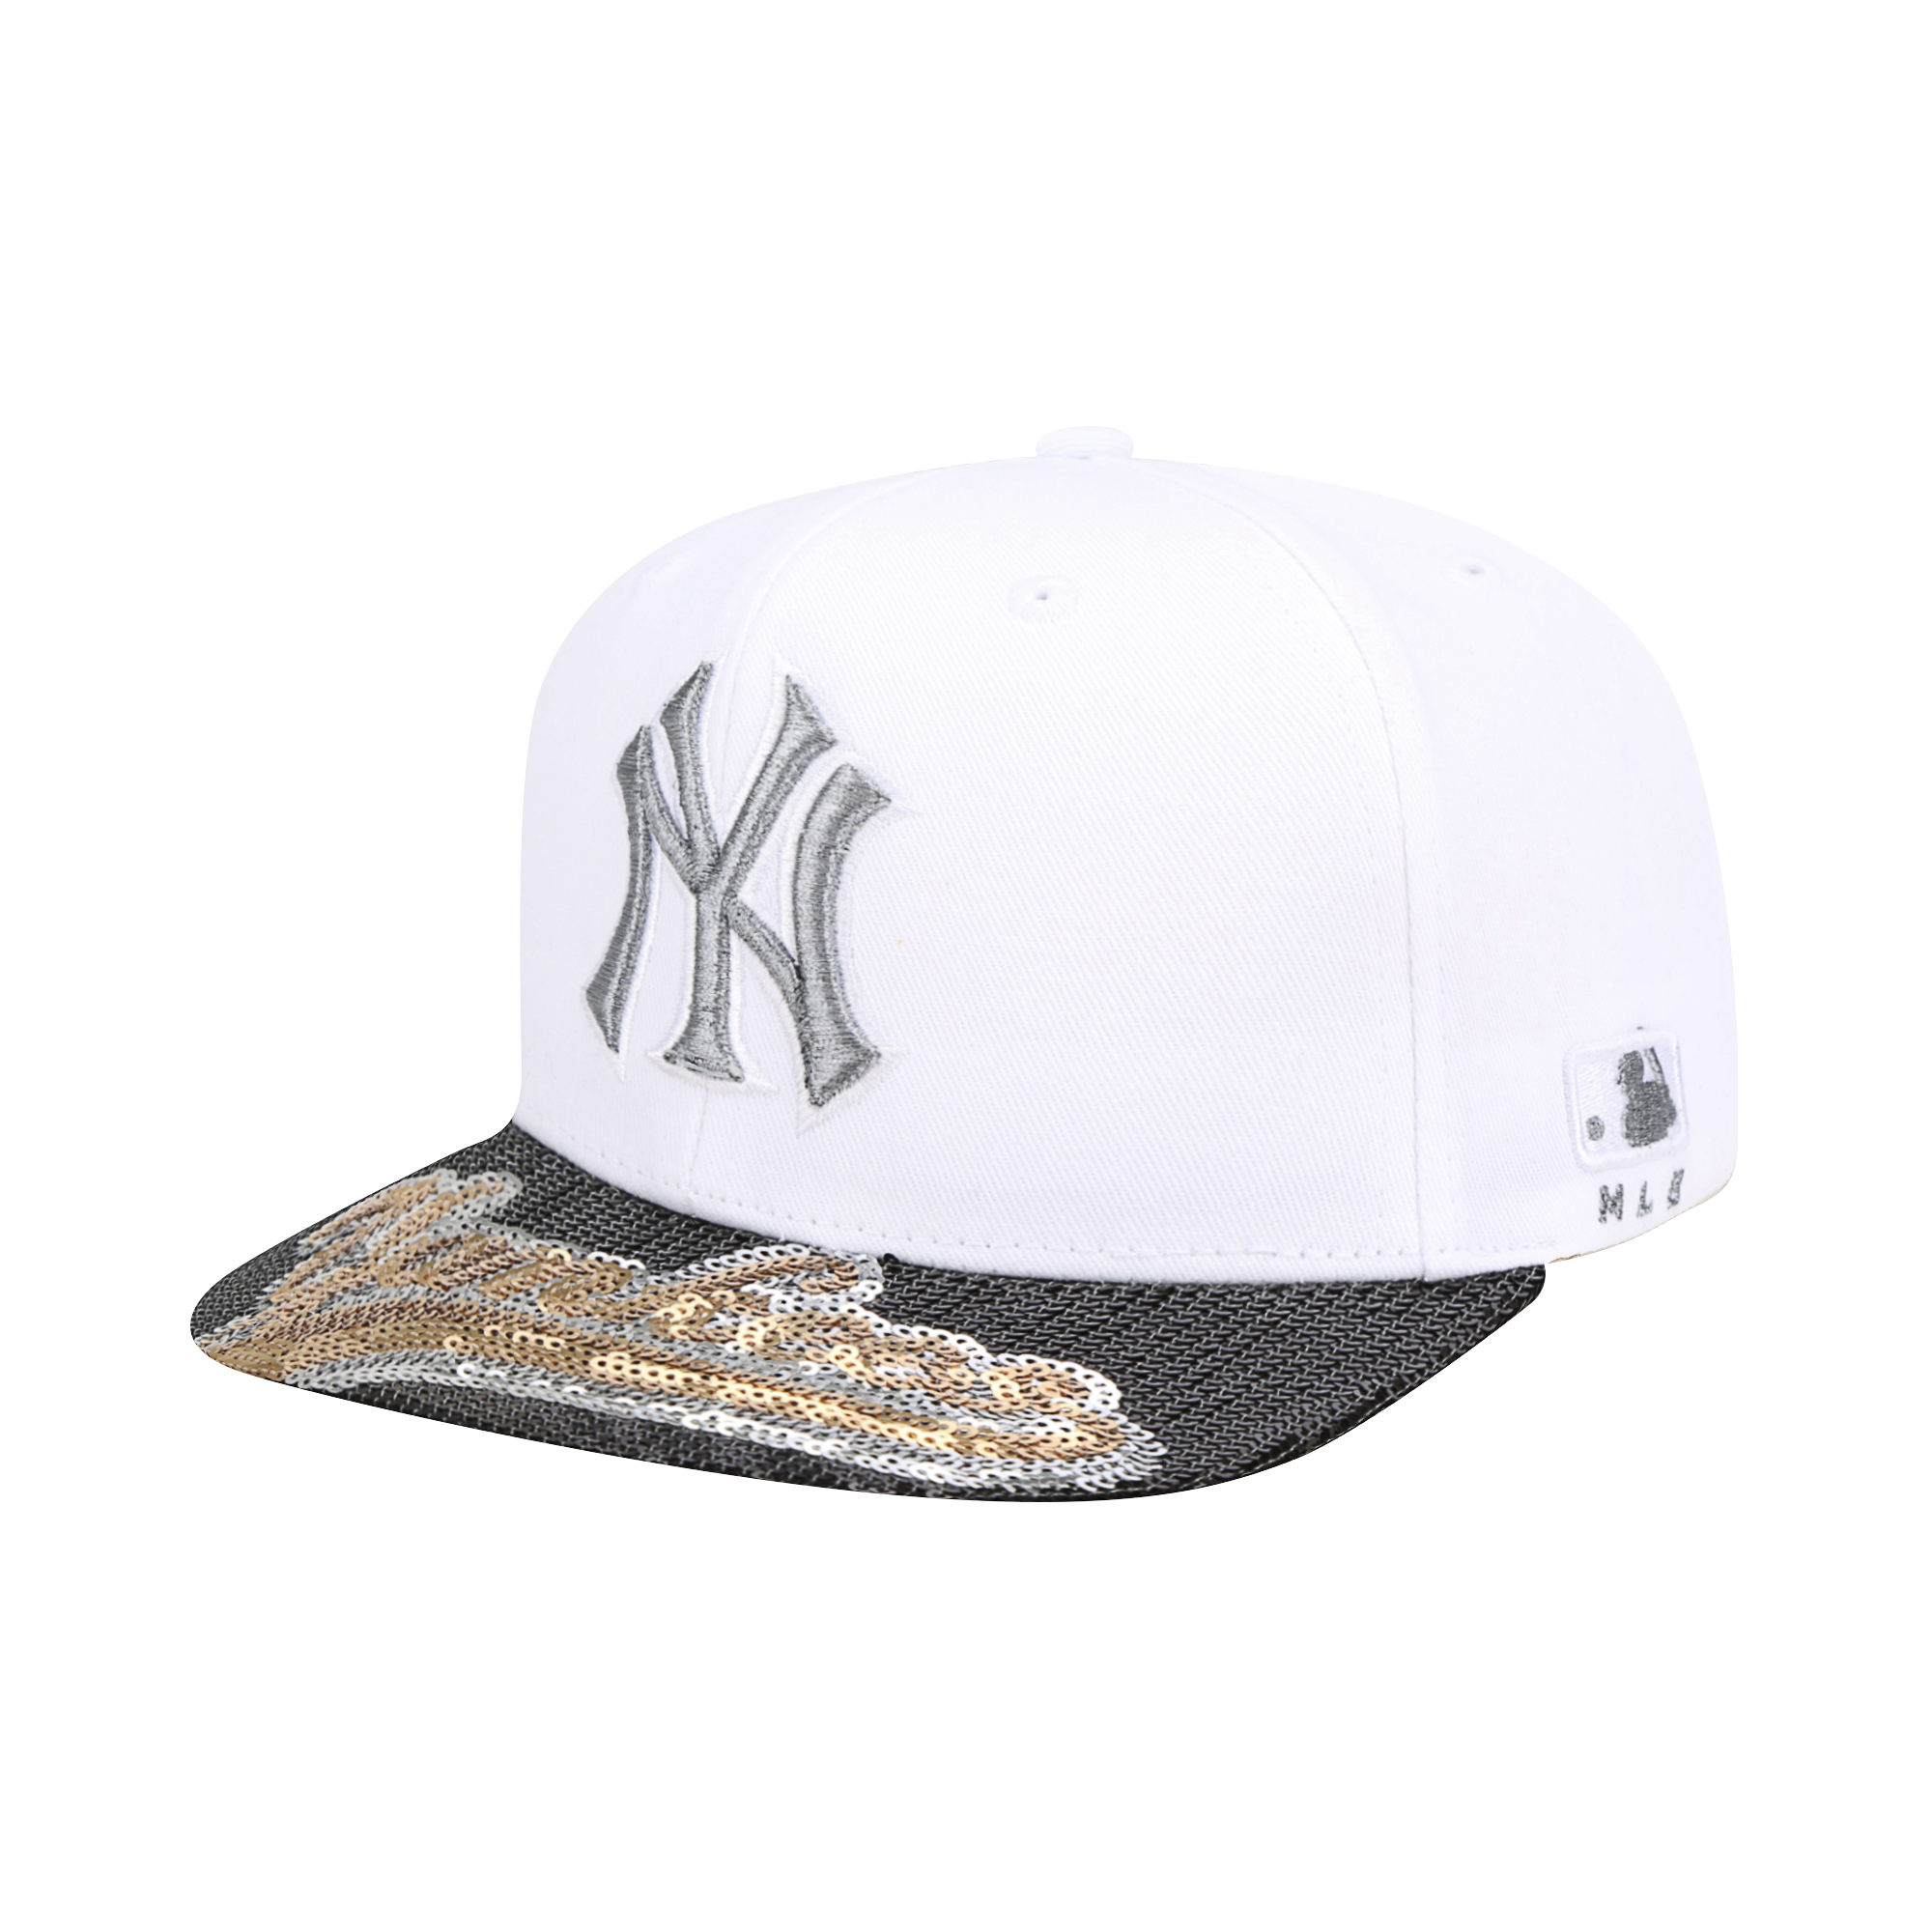 NEW YORK YANKEES LUX TWINKLE SHINE SNAPBACK